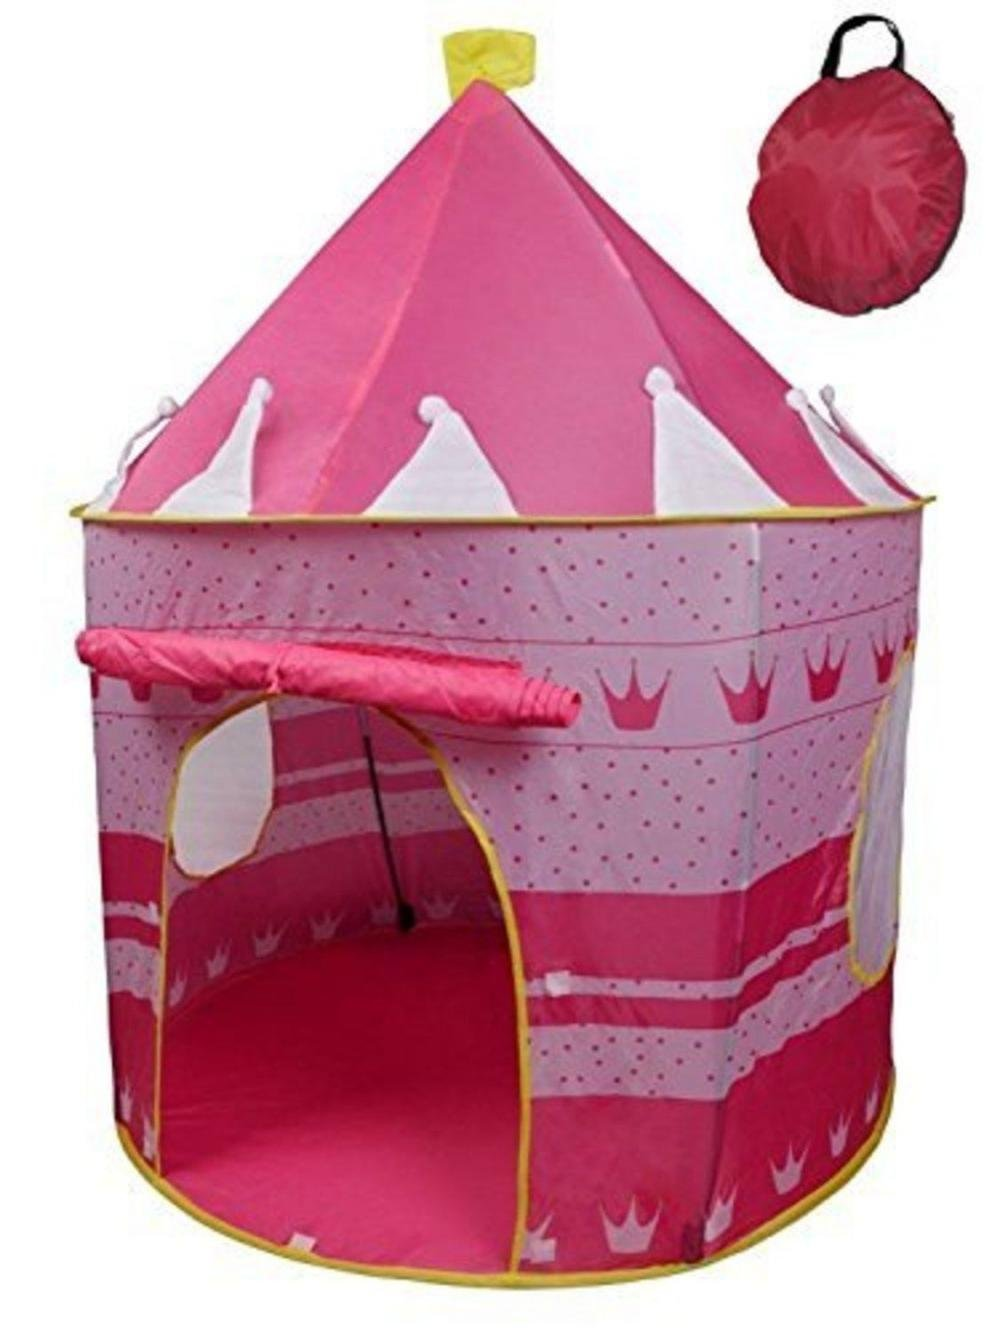 Amazon.com POCO DIVO Crown Princess Castle Girls Outdoor Tent Pink Indoor Play House Toys u0026 Games  sc 1 st  Amazon.com & Amazon.com: POCO DIVO Crown Princess Castle Girls Outdoor Tent ...